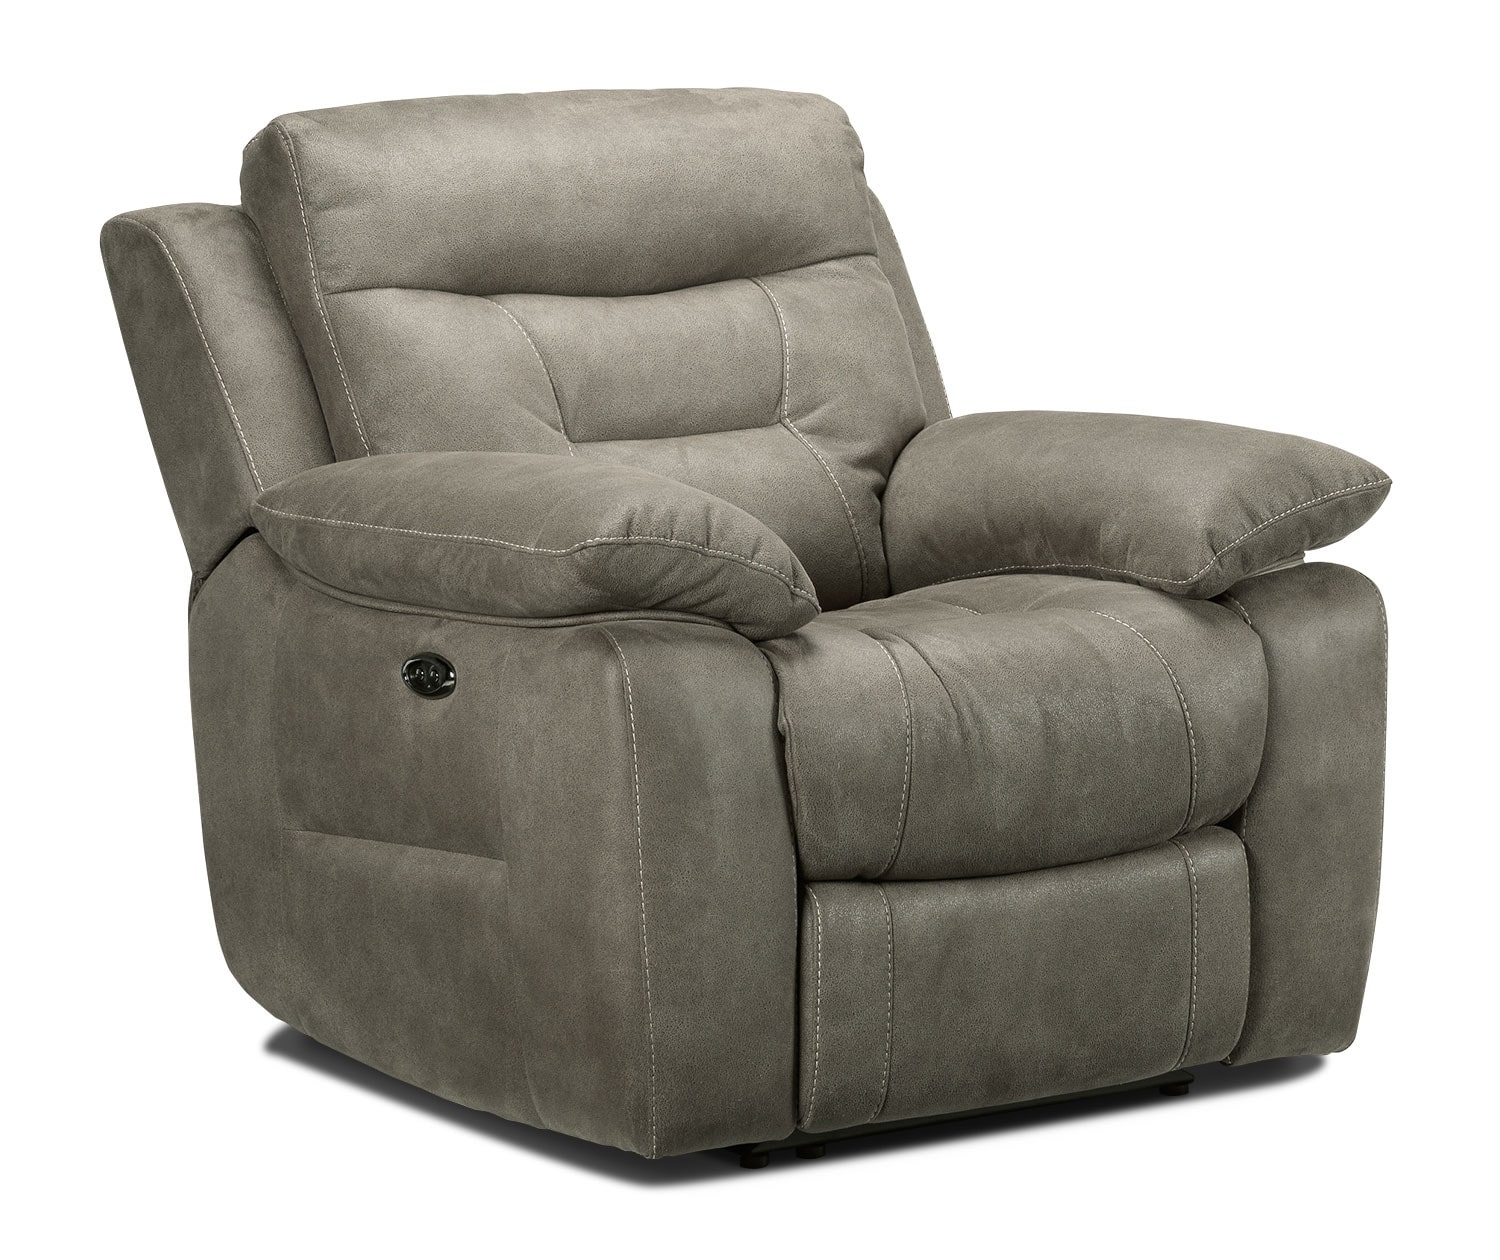 Collins Power Reclining Chair - Silver